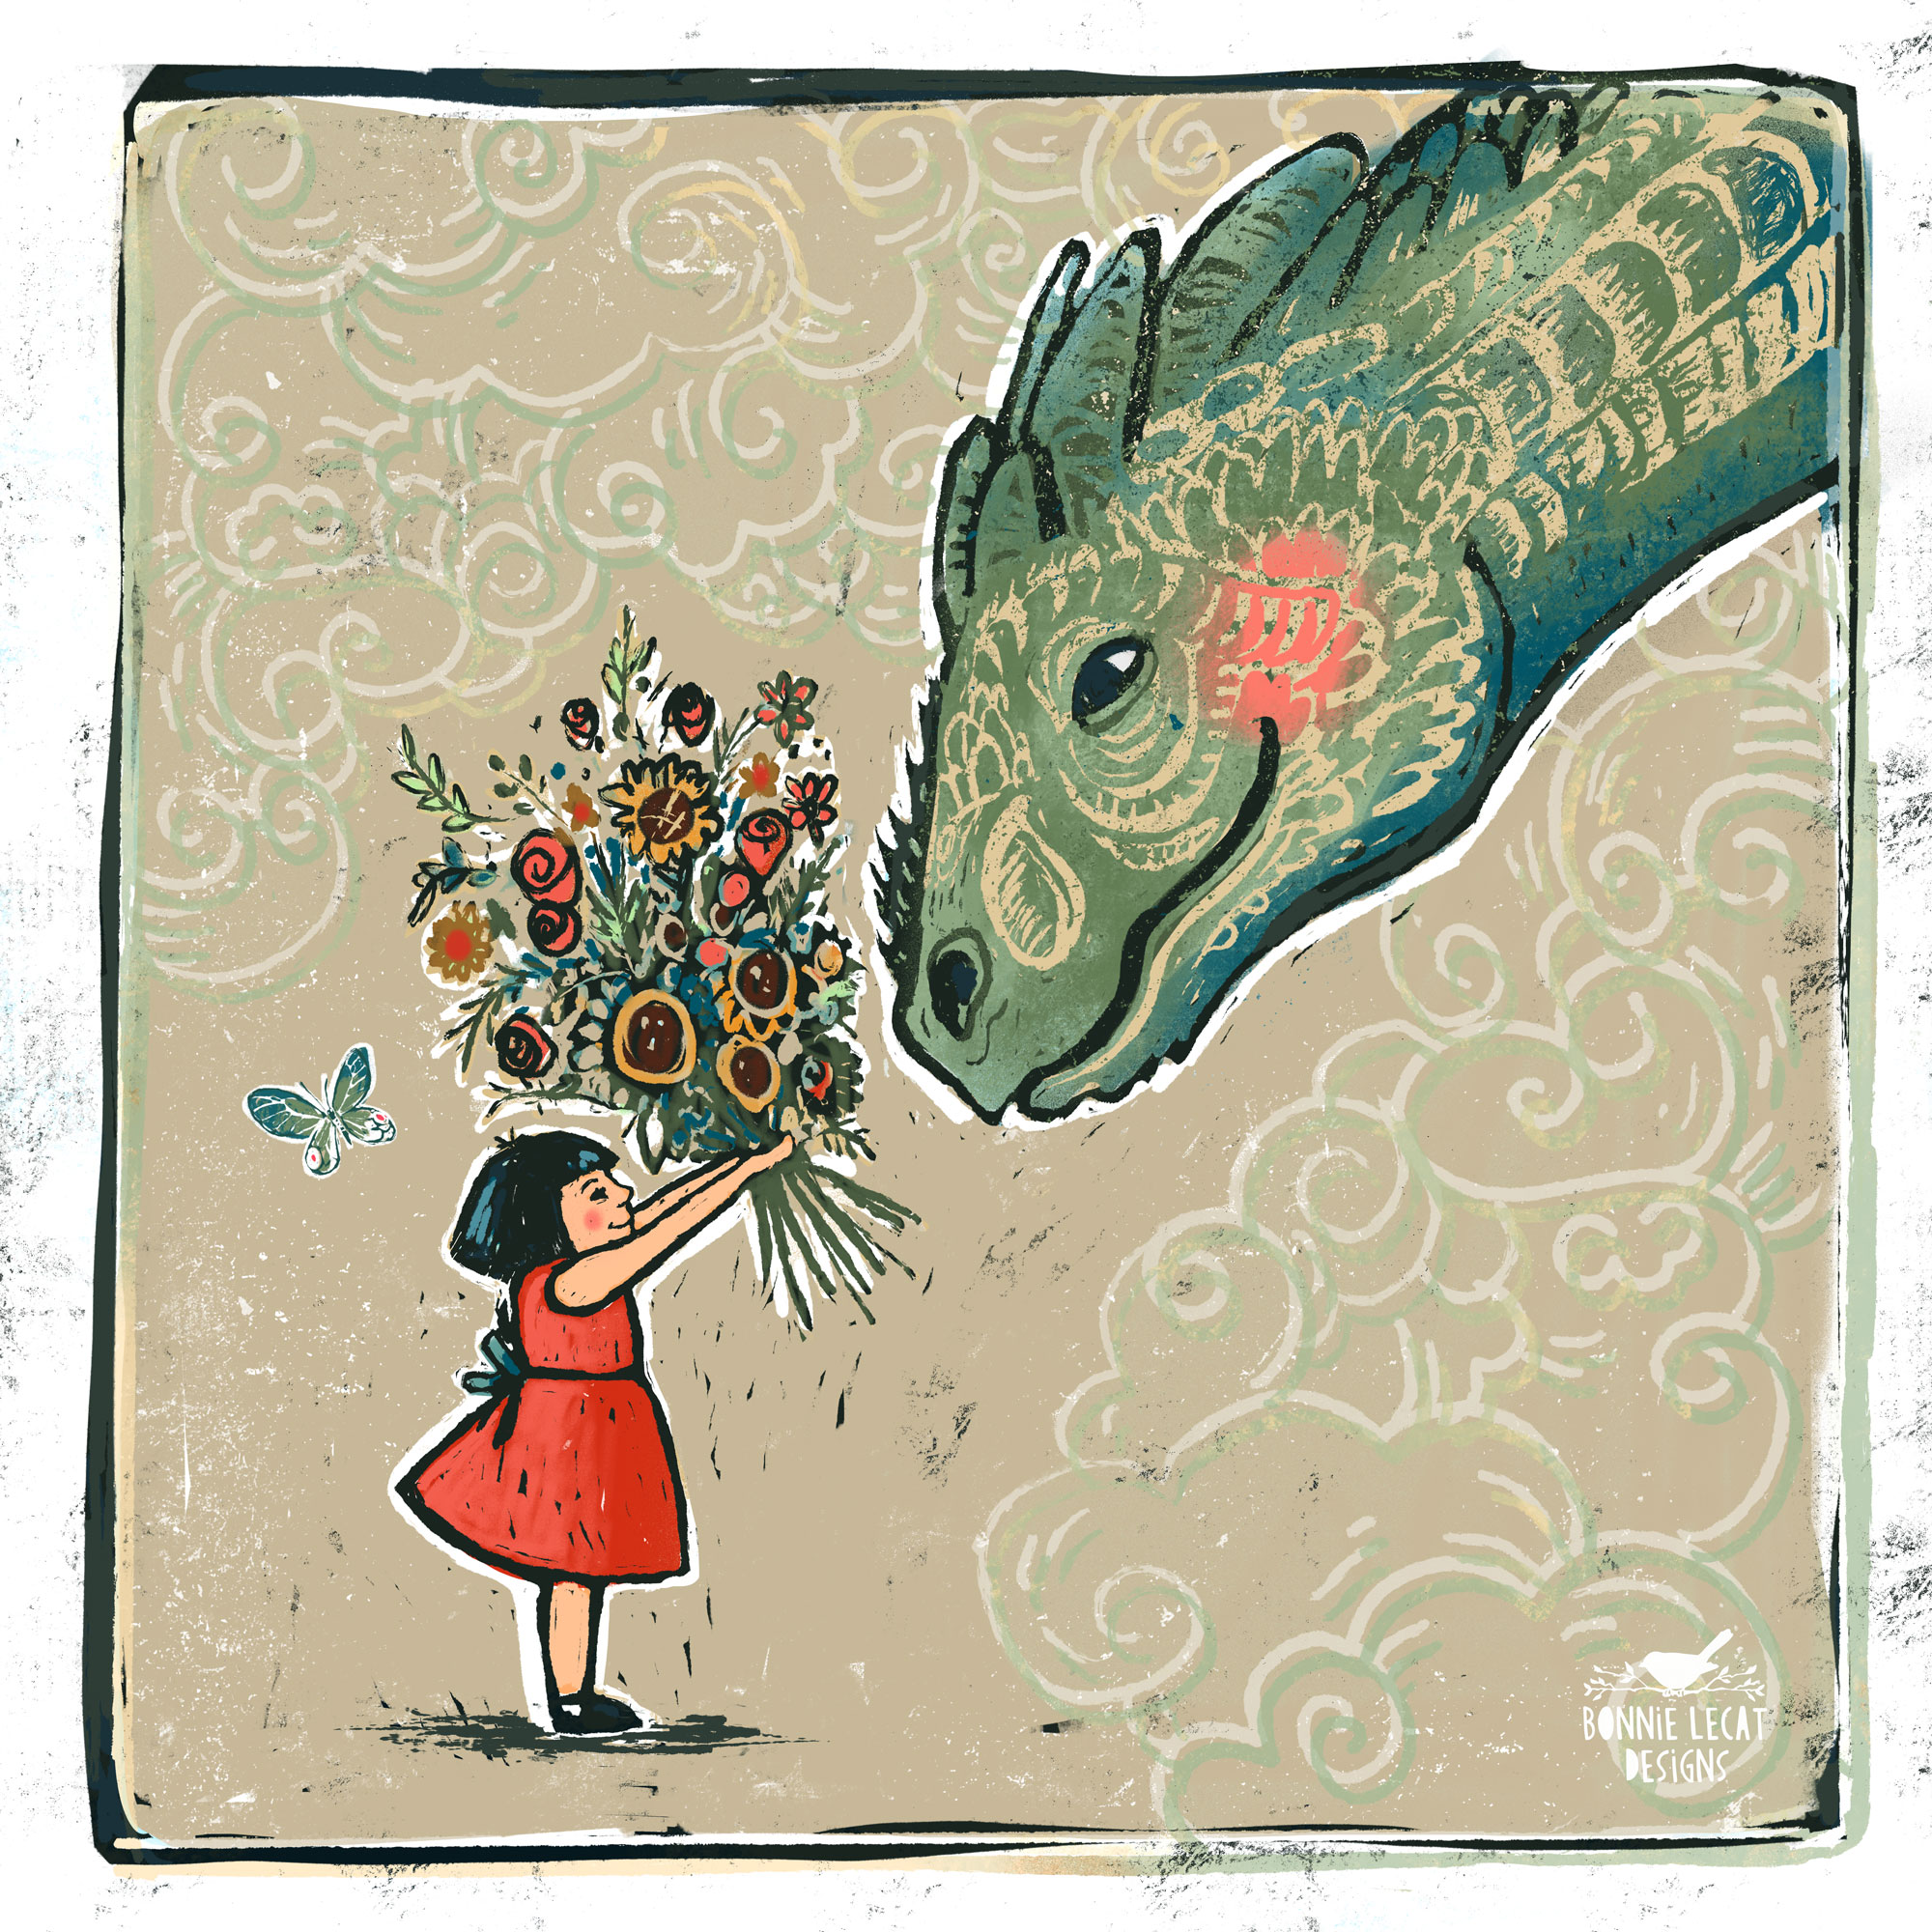 Pear Blossom and Dragon illustration by Bonnie Lecat.